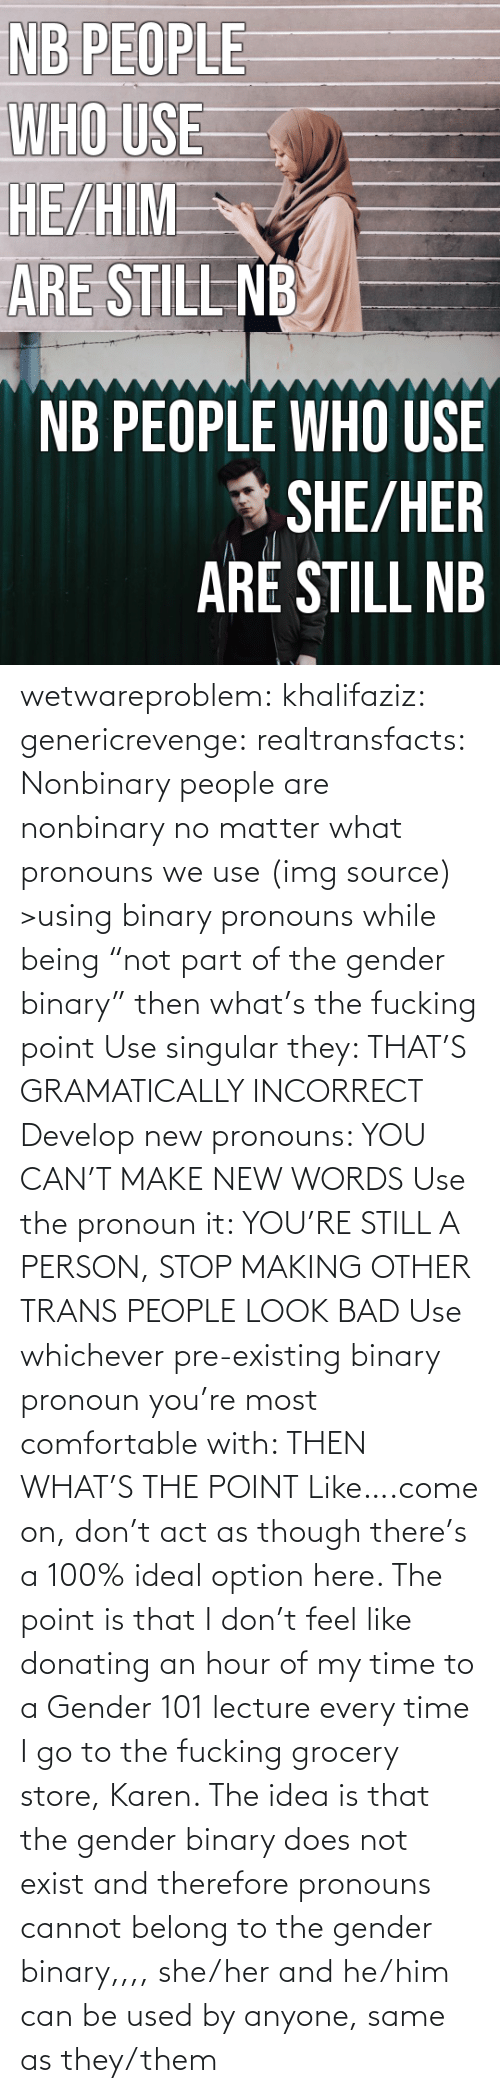 "comfortable: NB PEOPLE  WHO USE  HE/HIM  ARE STILL NB   NB PEOPLE WHO USE  * SHE/HER  ARÉ STILL NB wetwareproblem: khalifaziz:   genericrevenge:   realtransfacts: Nonbinary people are nonbinary no matter what pronouns we use (img source)   >using binary pronouns while being ""not part of the gender binary"" then what's the fucking point   Use singular they: THAT'S GRAMATICALLY INCORRECT Develop new pronouns: YOU CAN'T MAKE NEW WORDS Use the pronoun it: YOU'RE STILL A PERSON, STOP MAKING OTHER TRANS PEOPLE LOOK BAD Use whichever pre-existing binary pronoun you're most comfortable with: THEN WHAT'S THE POINT Like….come on, don't act as though there's a 100% ideal option here.    The point is that I don't feel like donating an hour of my time to a Gender 101 lecture every time I go to the fucking grocery store, Karen.     The idea is that the gender binary does not exist and therefore pronouns cannot belong to the gender binary,,,, she/her and he/him can be used by anyone, same as they/them"